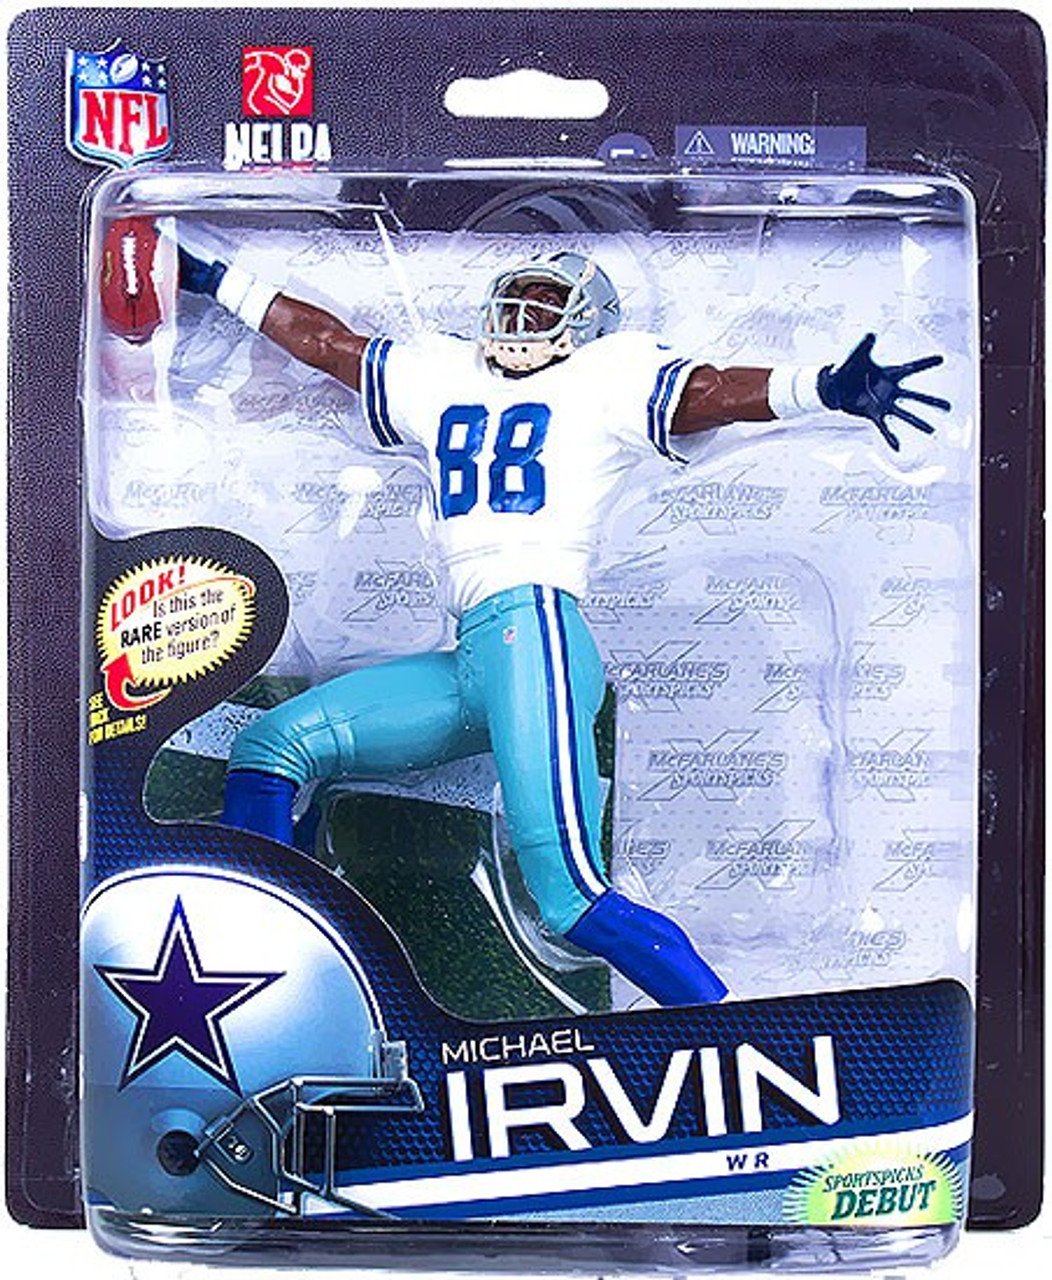 McFarlane Toys NFL Dallas Cowboys Sports Picks Series 33 Michael Irvin Action Figure